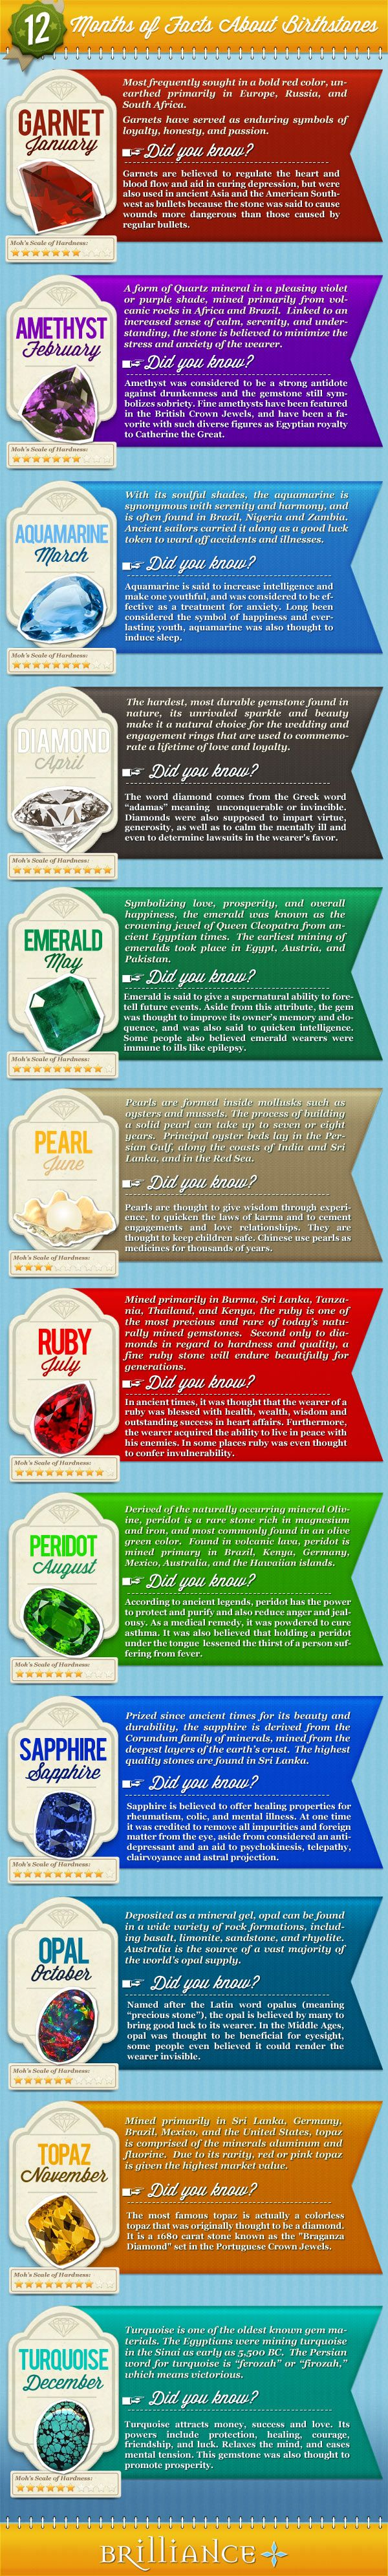 "With Mother's Day right around the corner we thought an infographic guide to each month's birthstone would help. This year, beat out your siblings' gifts (or that cheesy card) and bring your ""A-game"" with Gemstone ..."